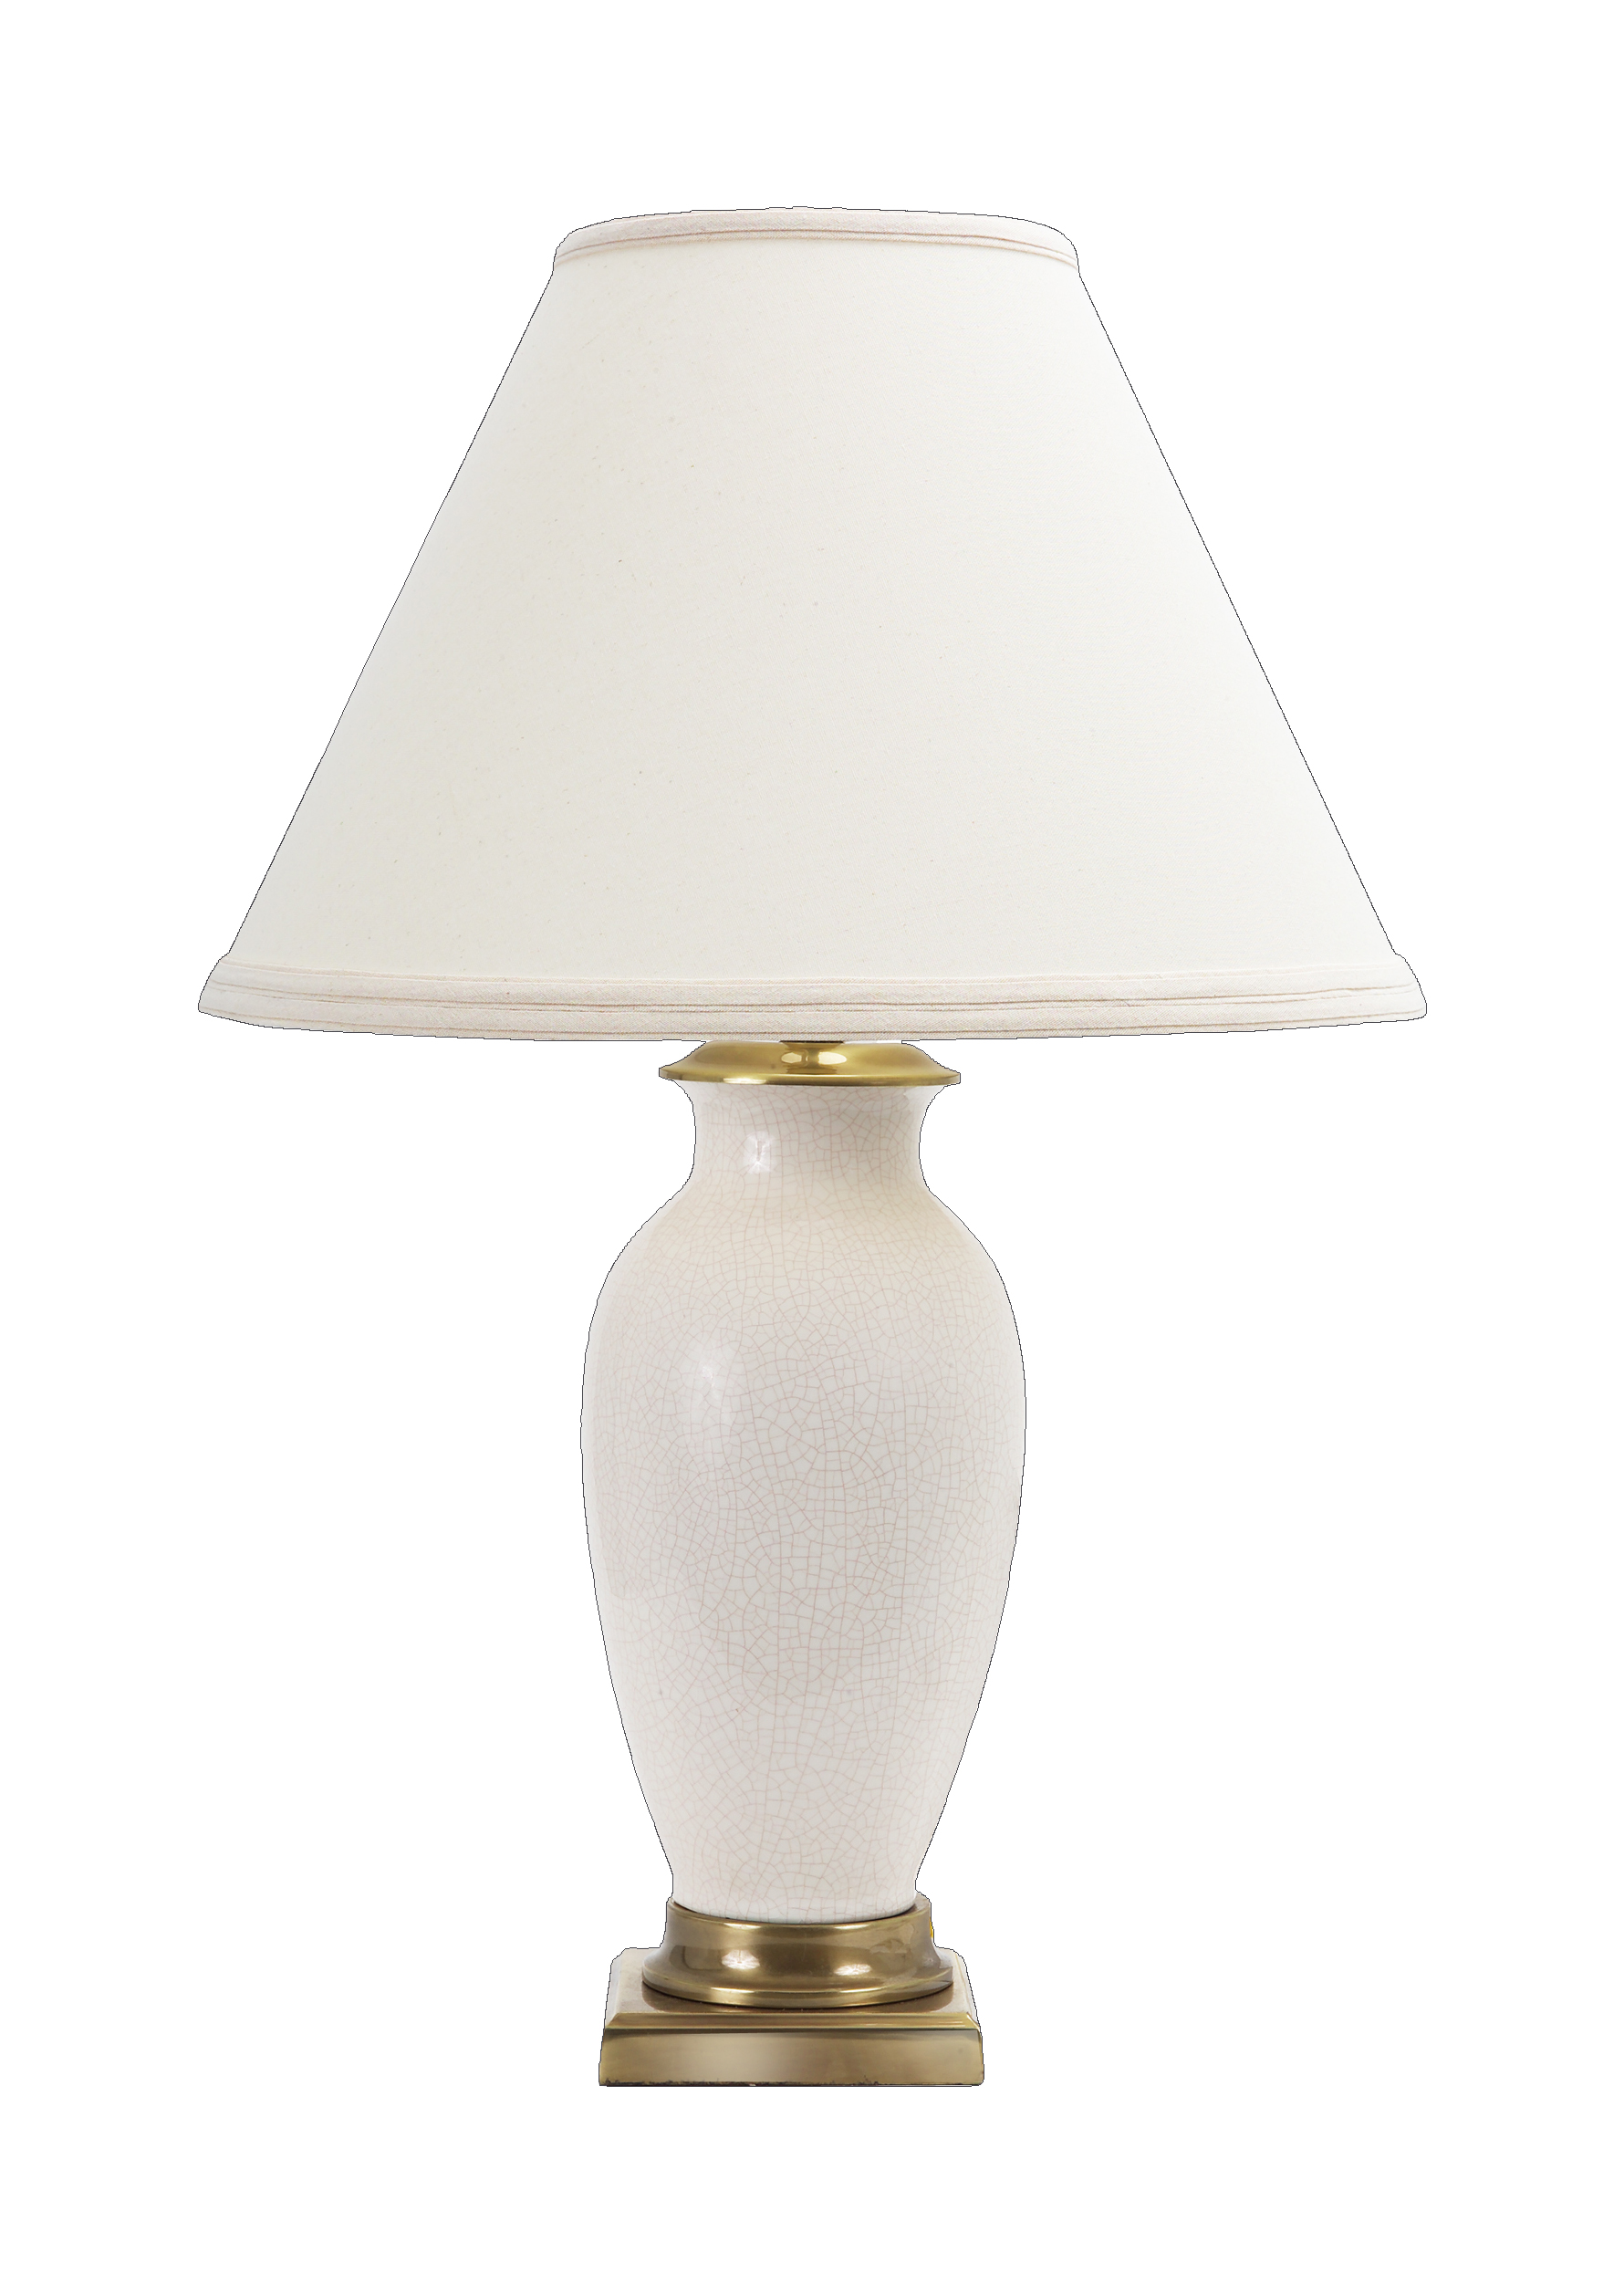 Wildwood lamps 65156 frederick cooper white crackle glazeantique general information geotapseo Image collections